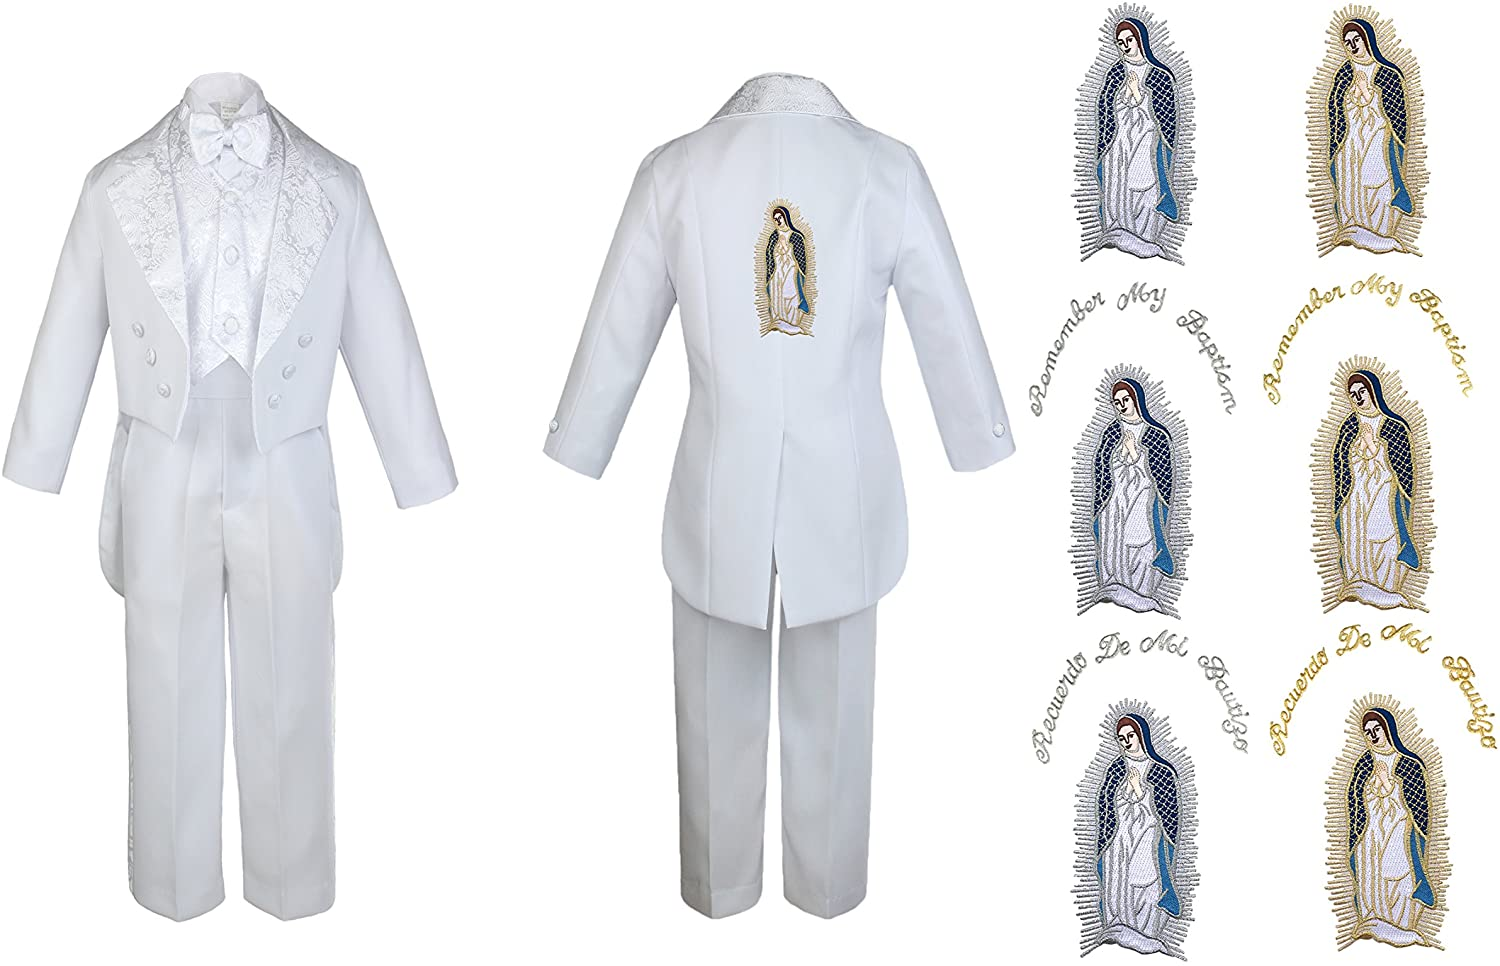 Baby Boy Kid Christening Baptism White Tail Suit Virgin Mary Maria on Back Sm-7